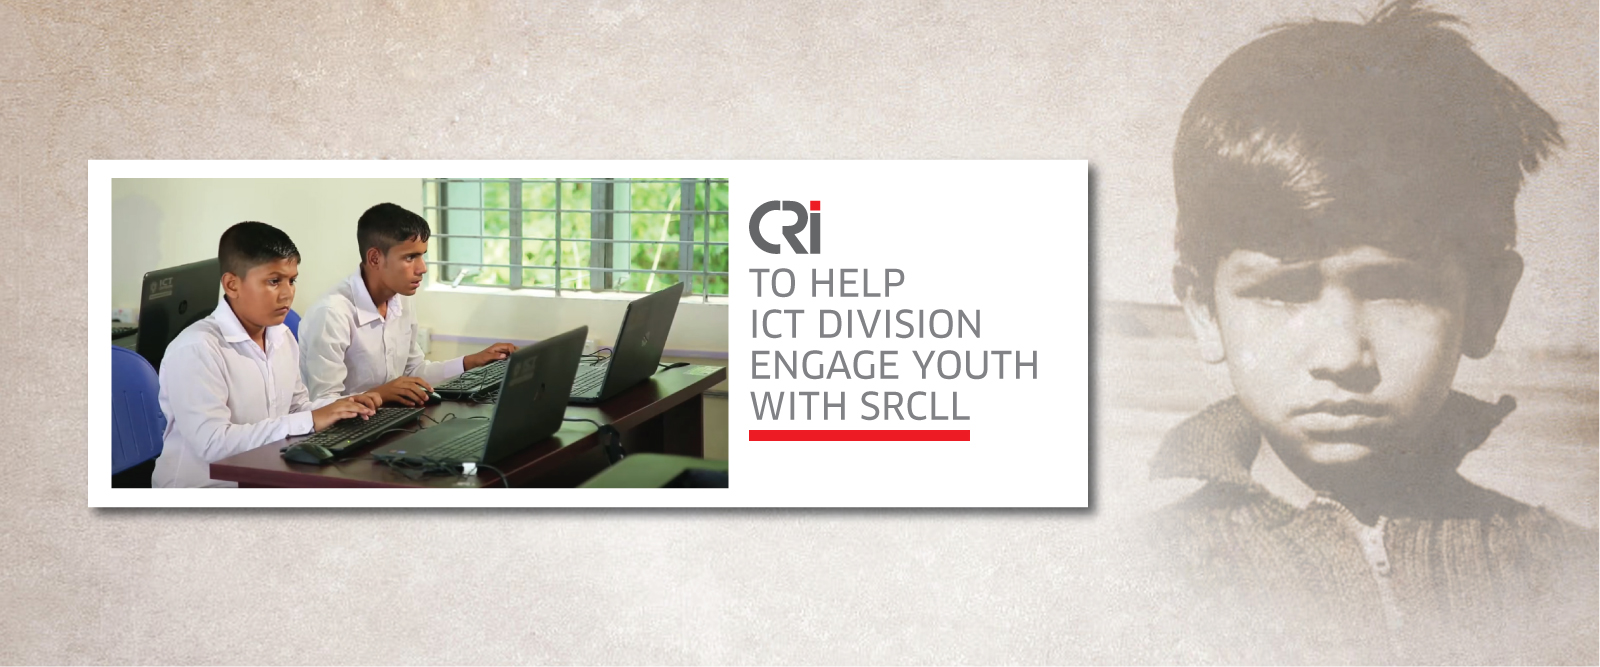 CRI To Help ICT Division Engage Youth With SRCLL